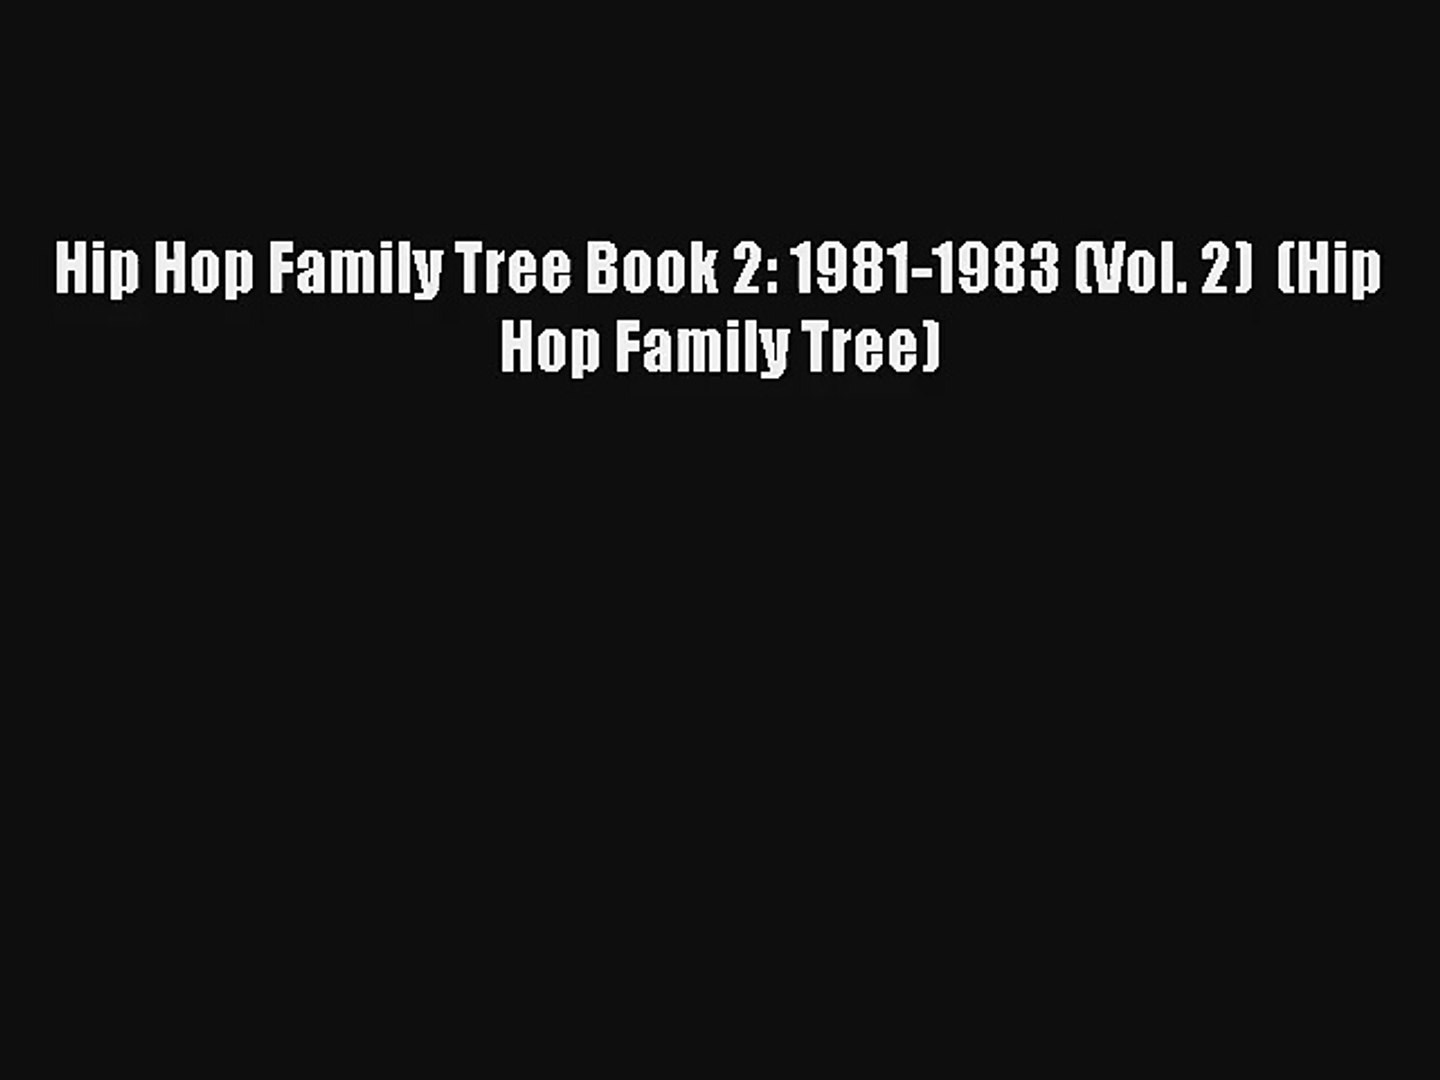 Read Hip Hop Family Tree Book 2: 1981-1983 (Vol. 2)  (Hip Hop Family Tree) Book Download Free